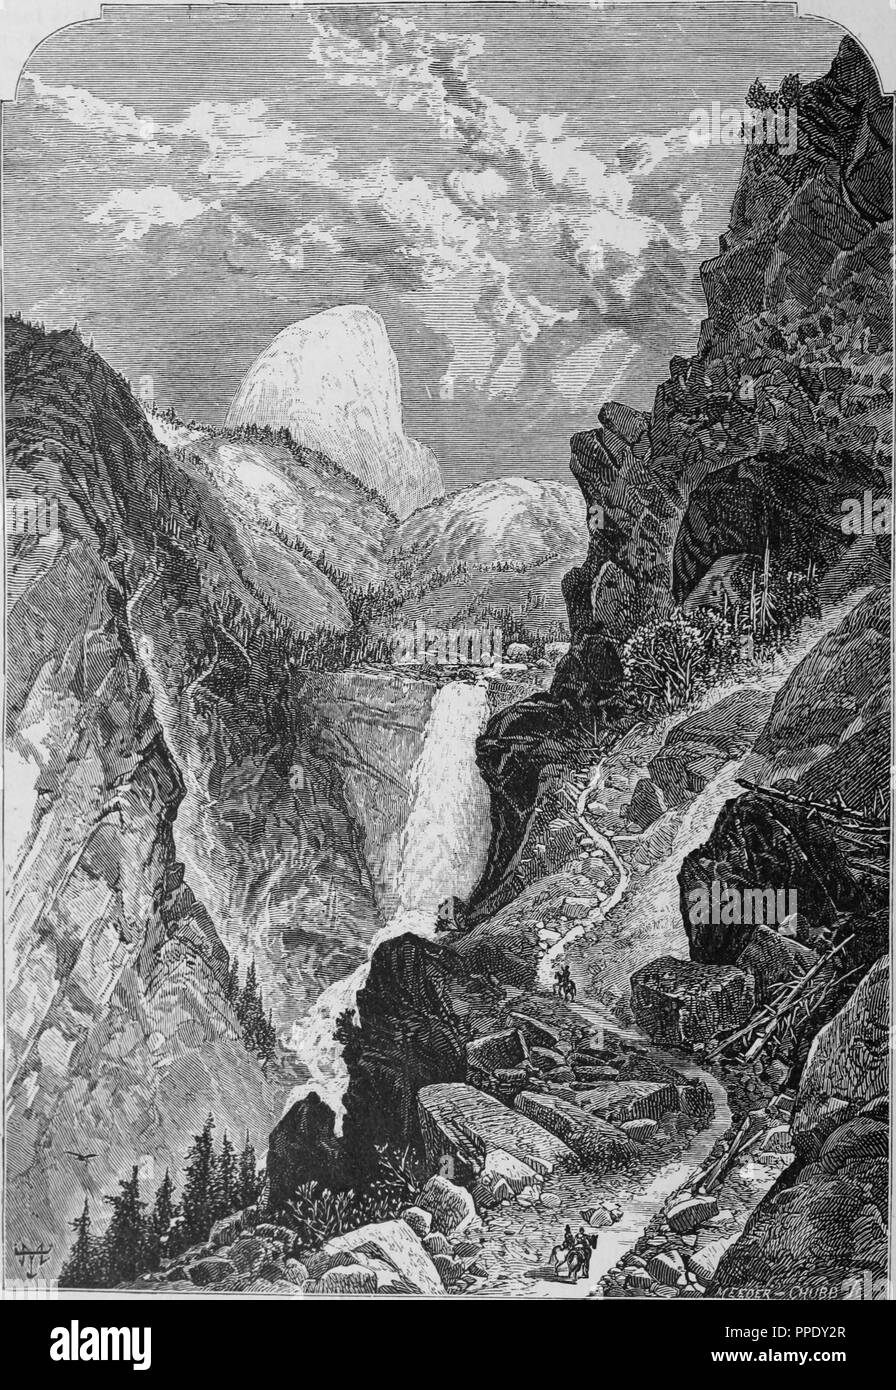 Engraving of the Vernal Falls in Yosemite, California, from the book 'The Pacific tourist', 1877. Courtesy Internet Archive. () - Stock Image